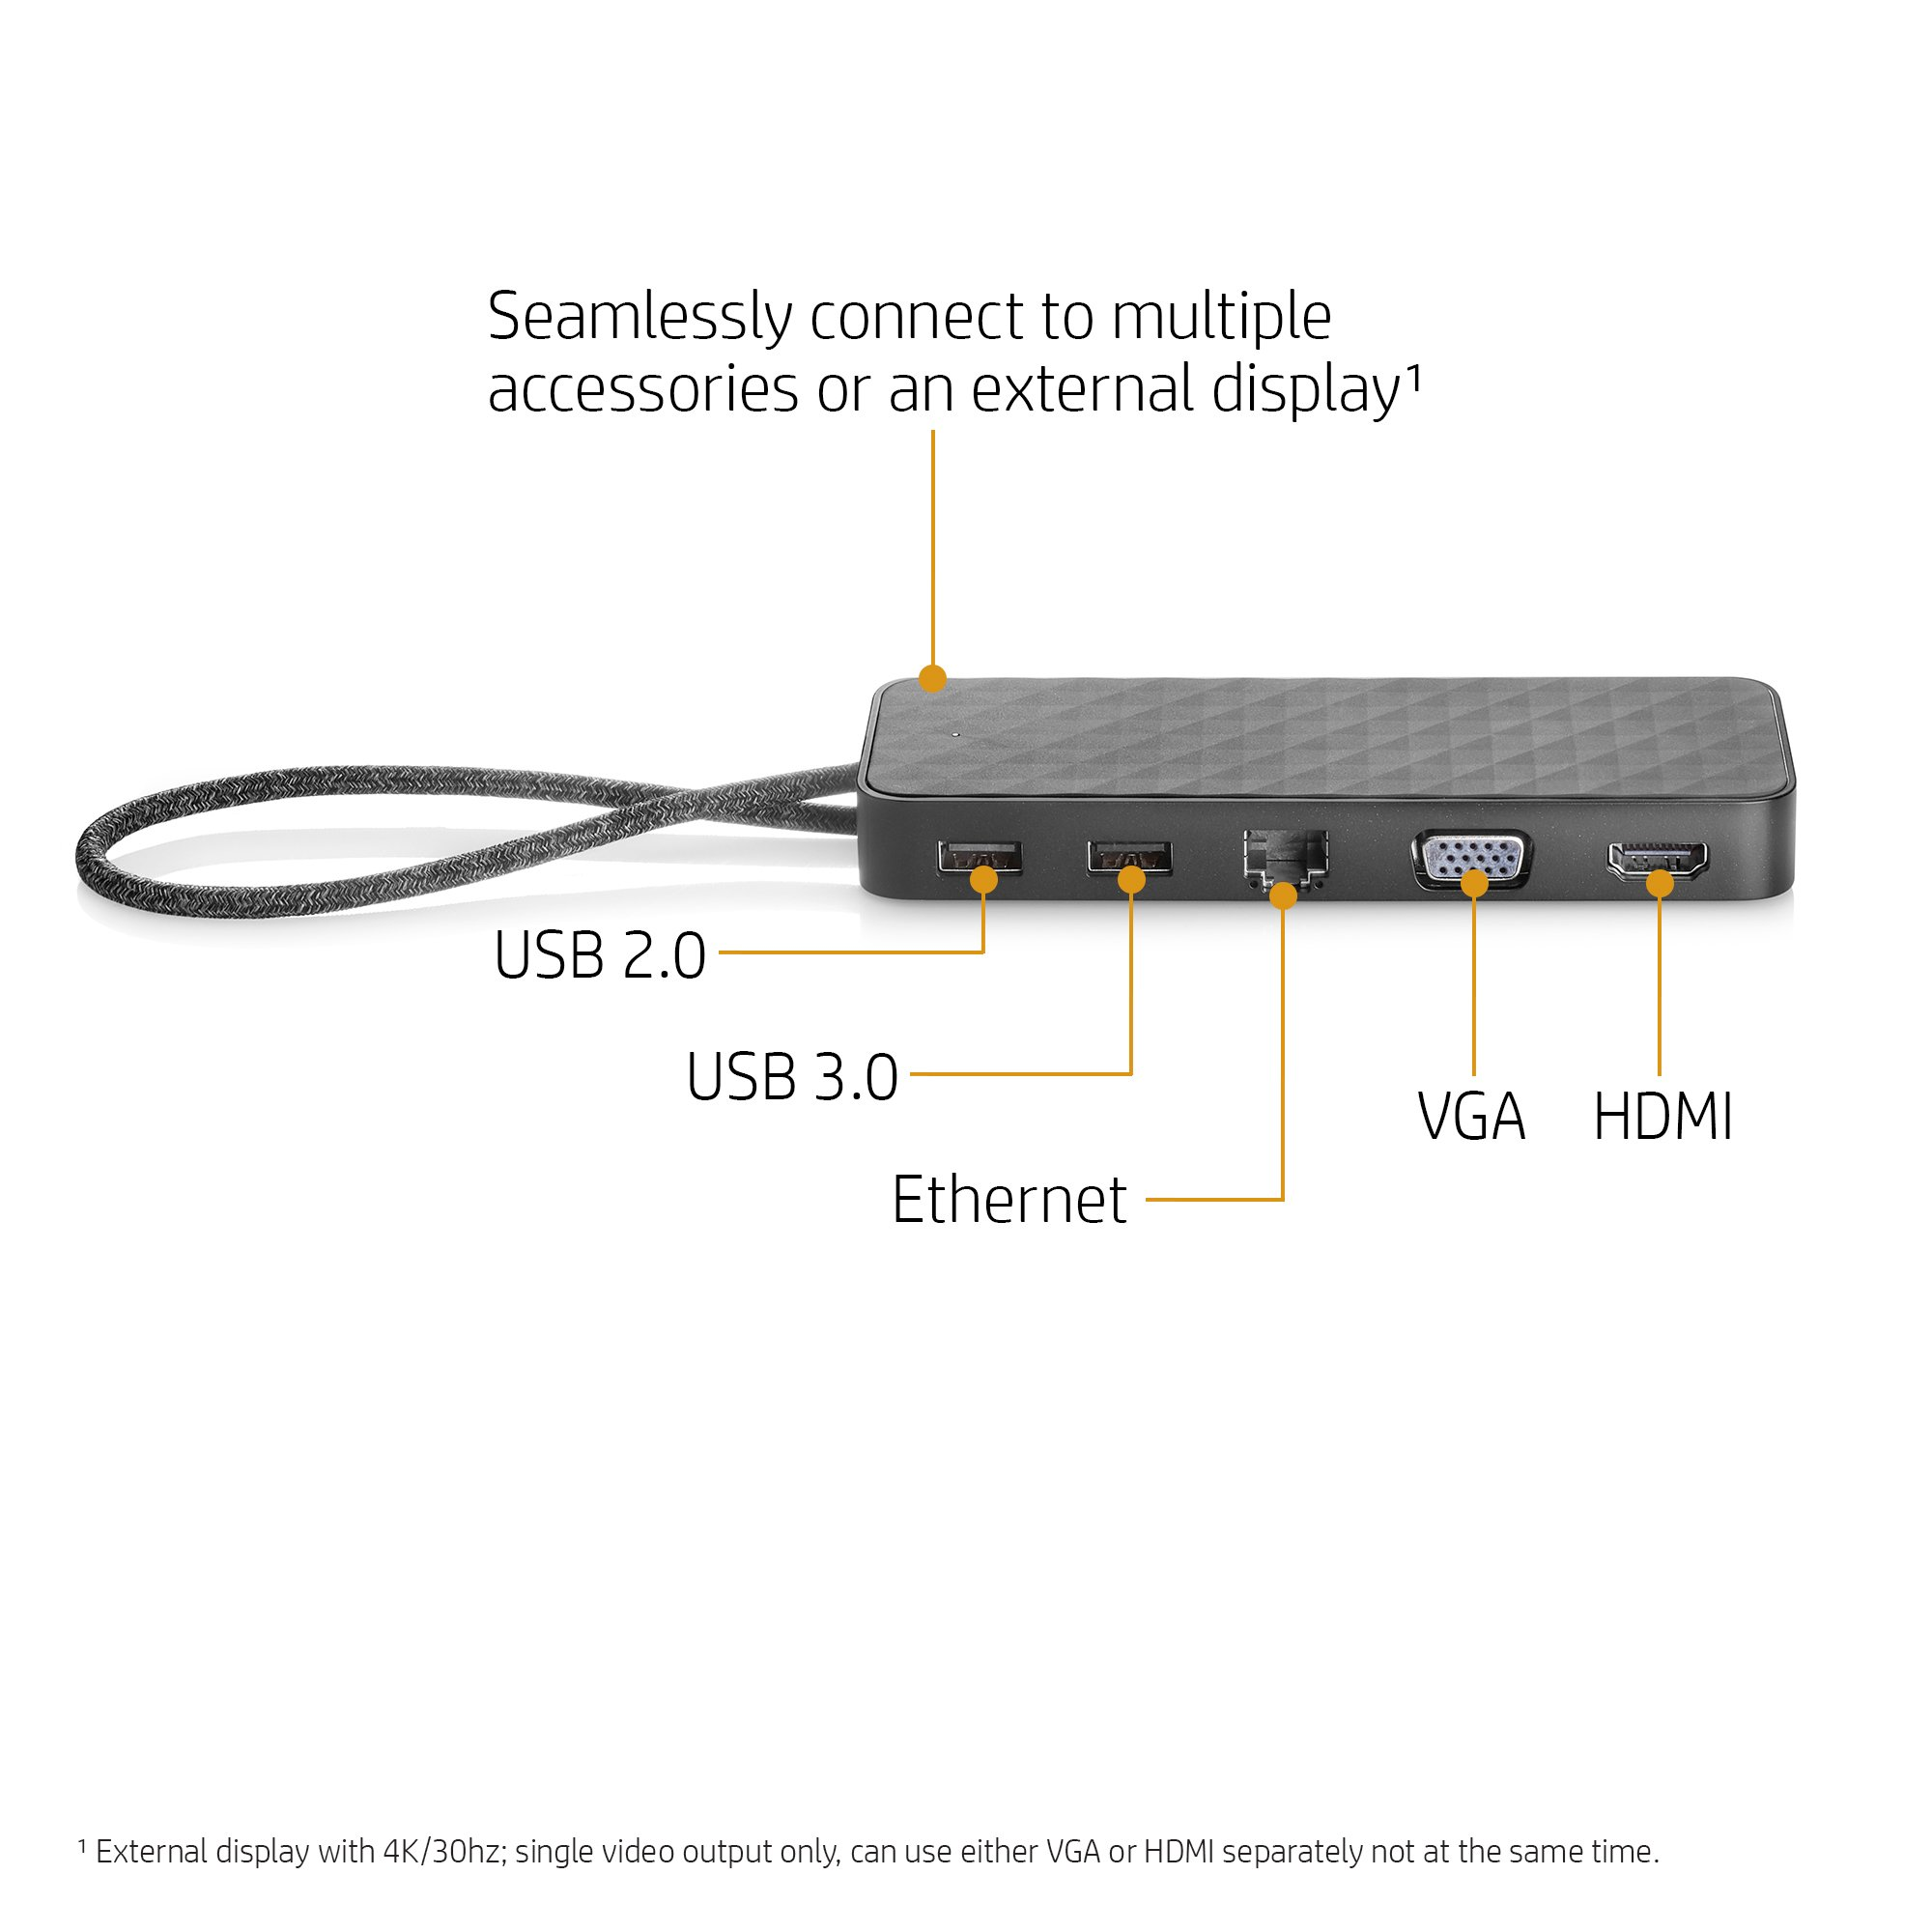 HP Spectre Travel Dock for HP USB-C Charging Laptops (with VGA, HDMI, Ethernet, and multiple USB ports) by HP (Image #2)